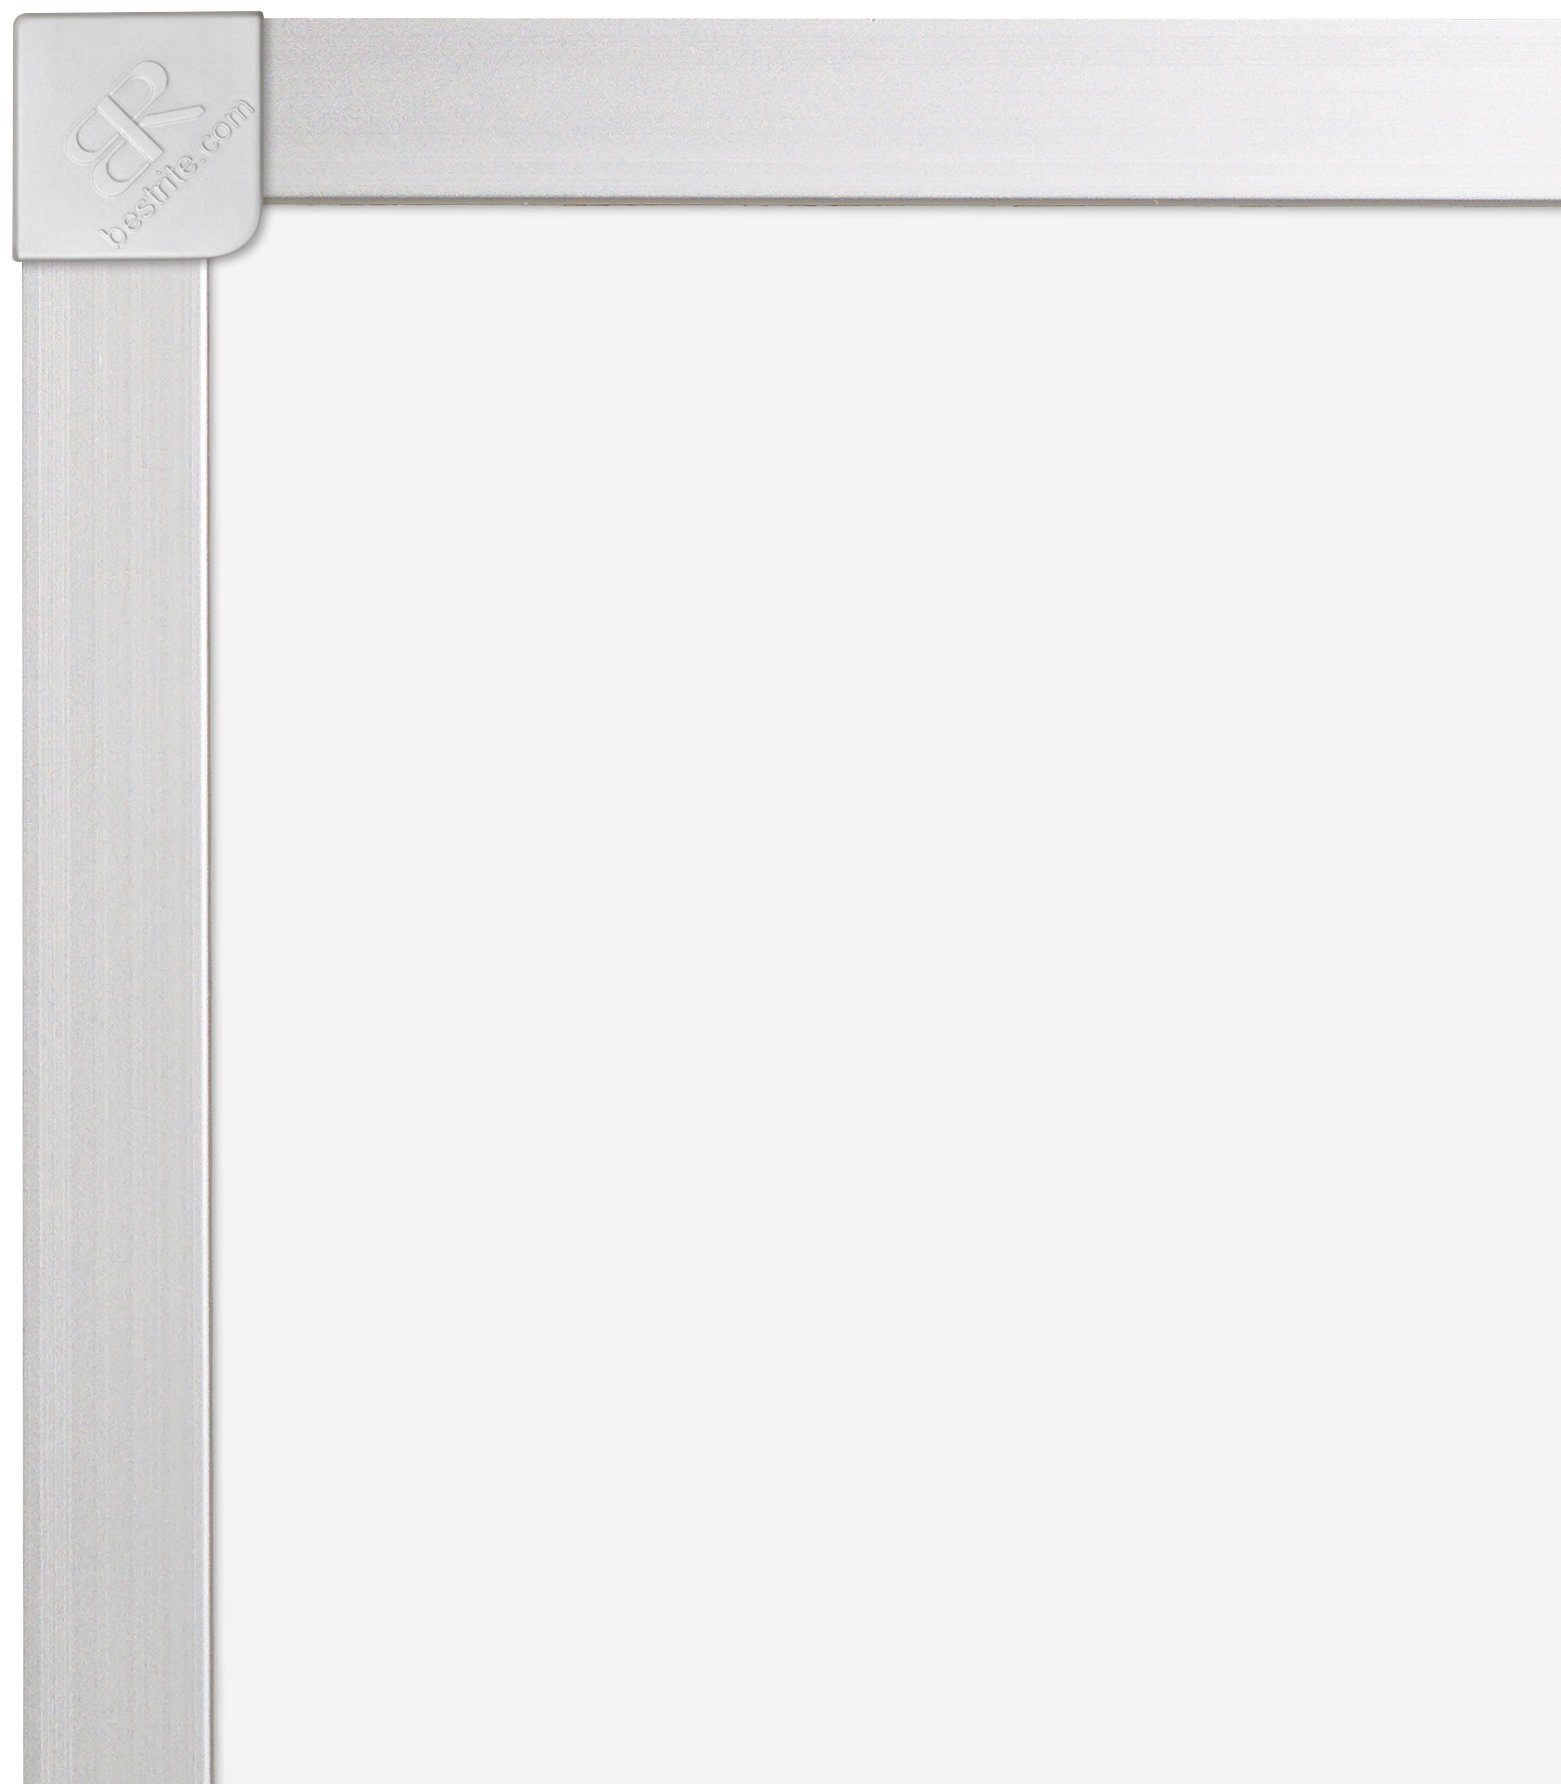 Best-Rite ABC Classroom Dry Erase Porcelain Steel Magnetic Markerboard, 4 x 4 Feet Whiteboard (2H2ND-25)